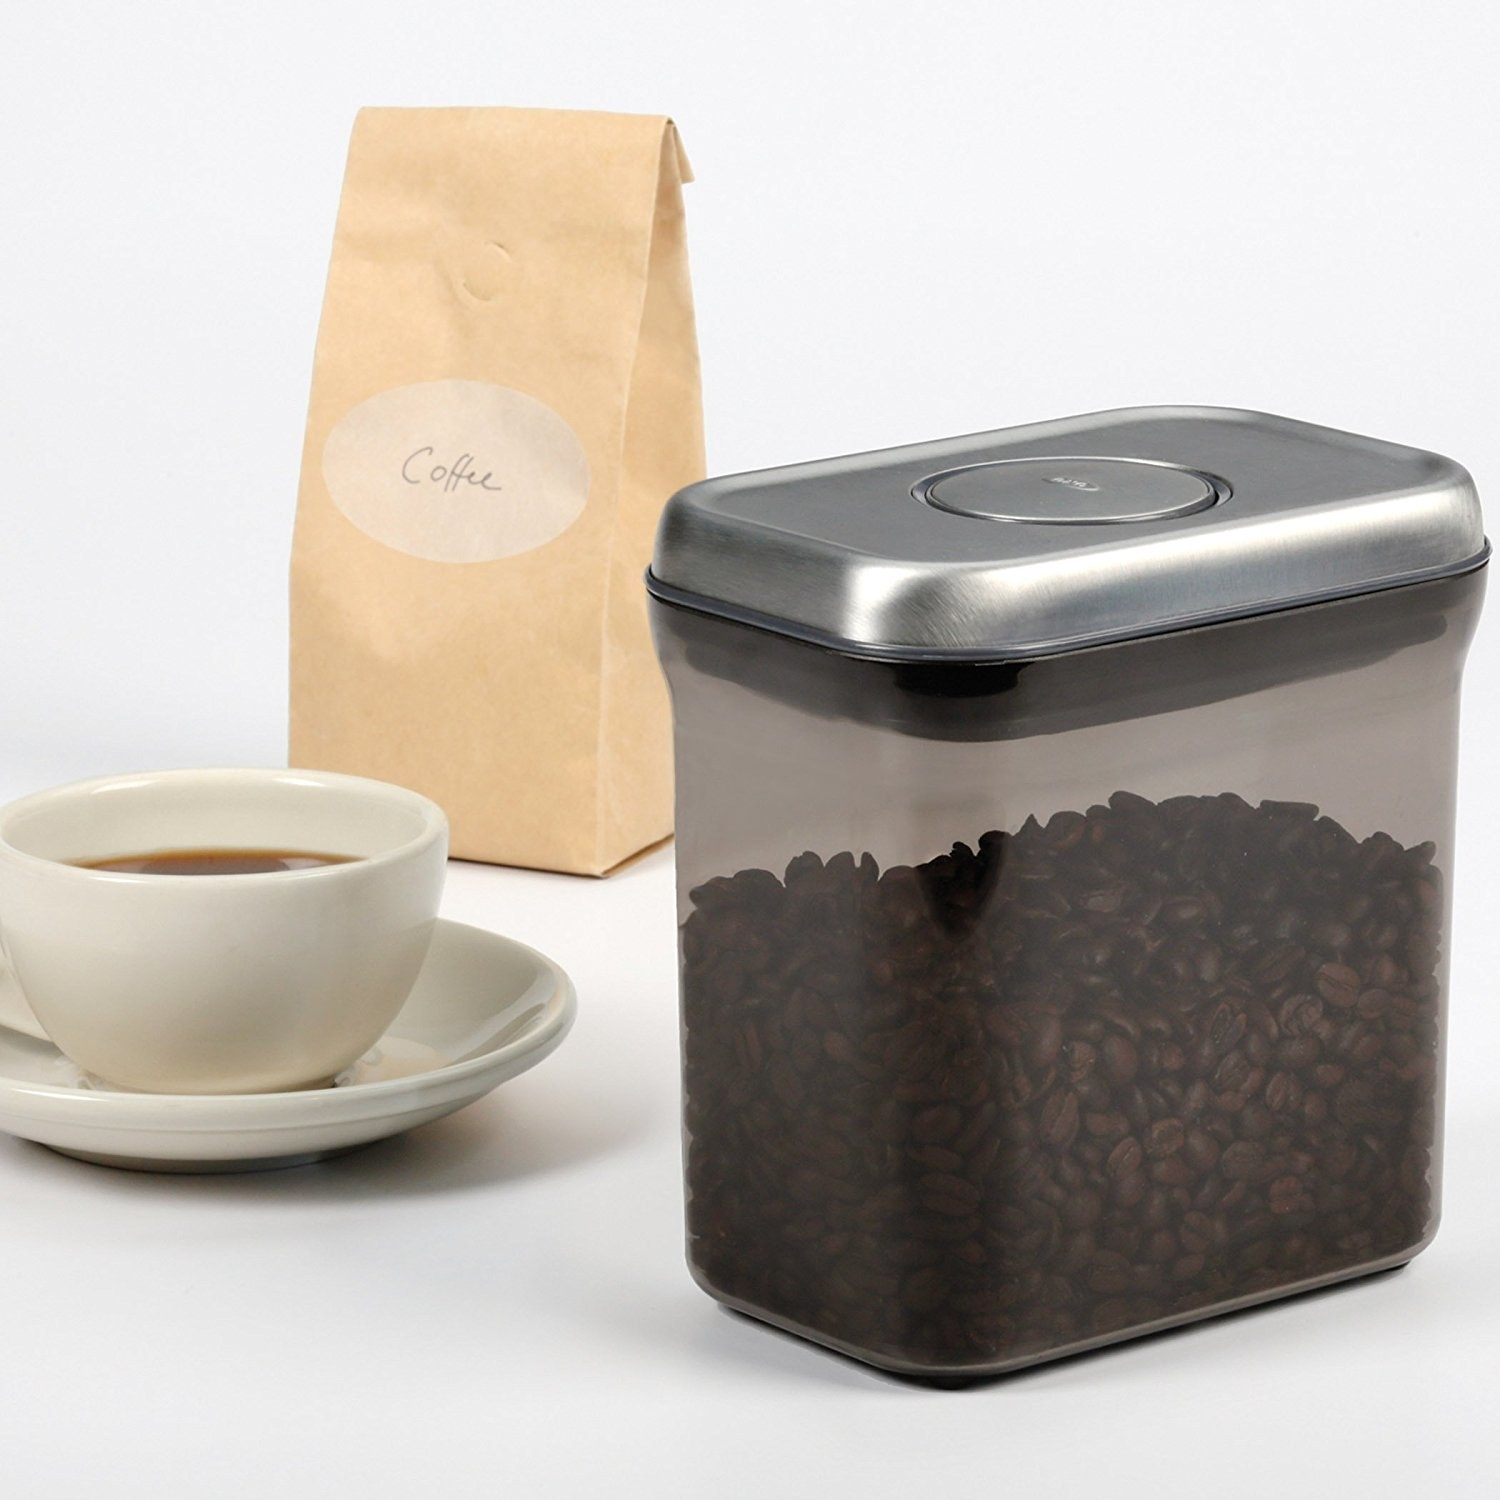 coffee beans in a dark tinted container with a sealing button on top that helps with freshness.